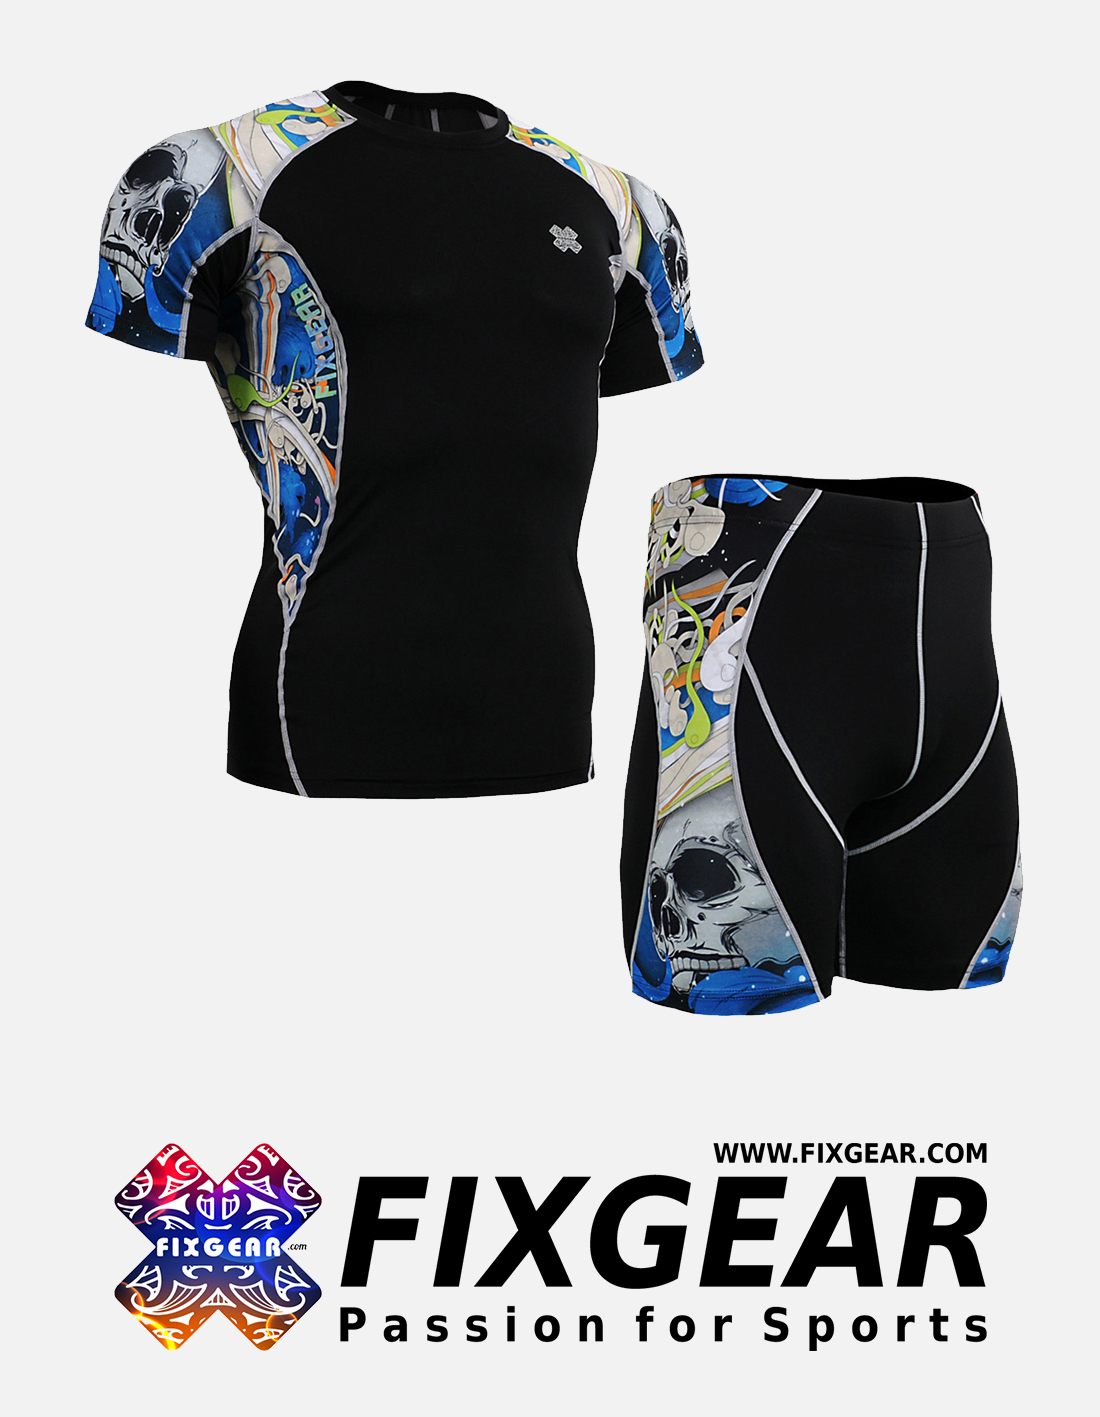 FIXGEAR C2S-P2S-B19B Set Compression Base Layer Shirt & Compression Drawer Shorts